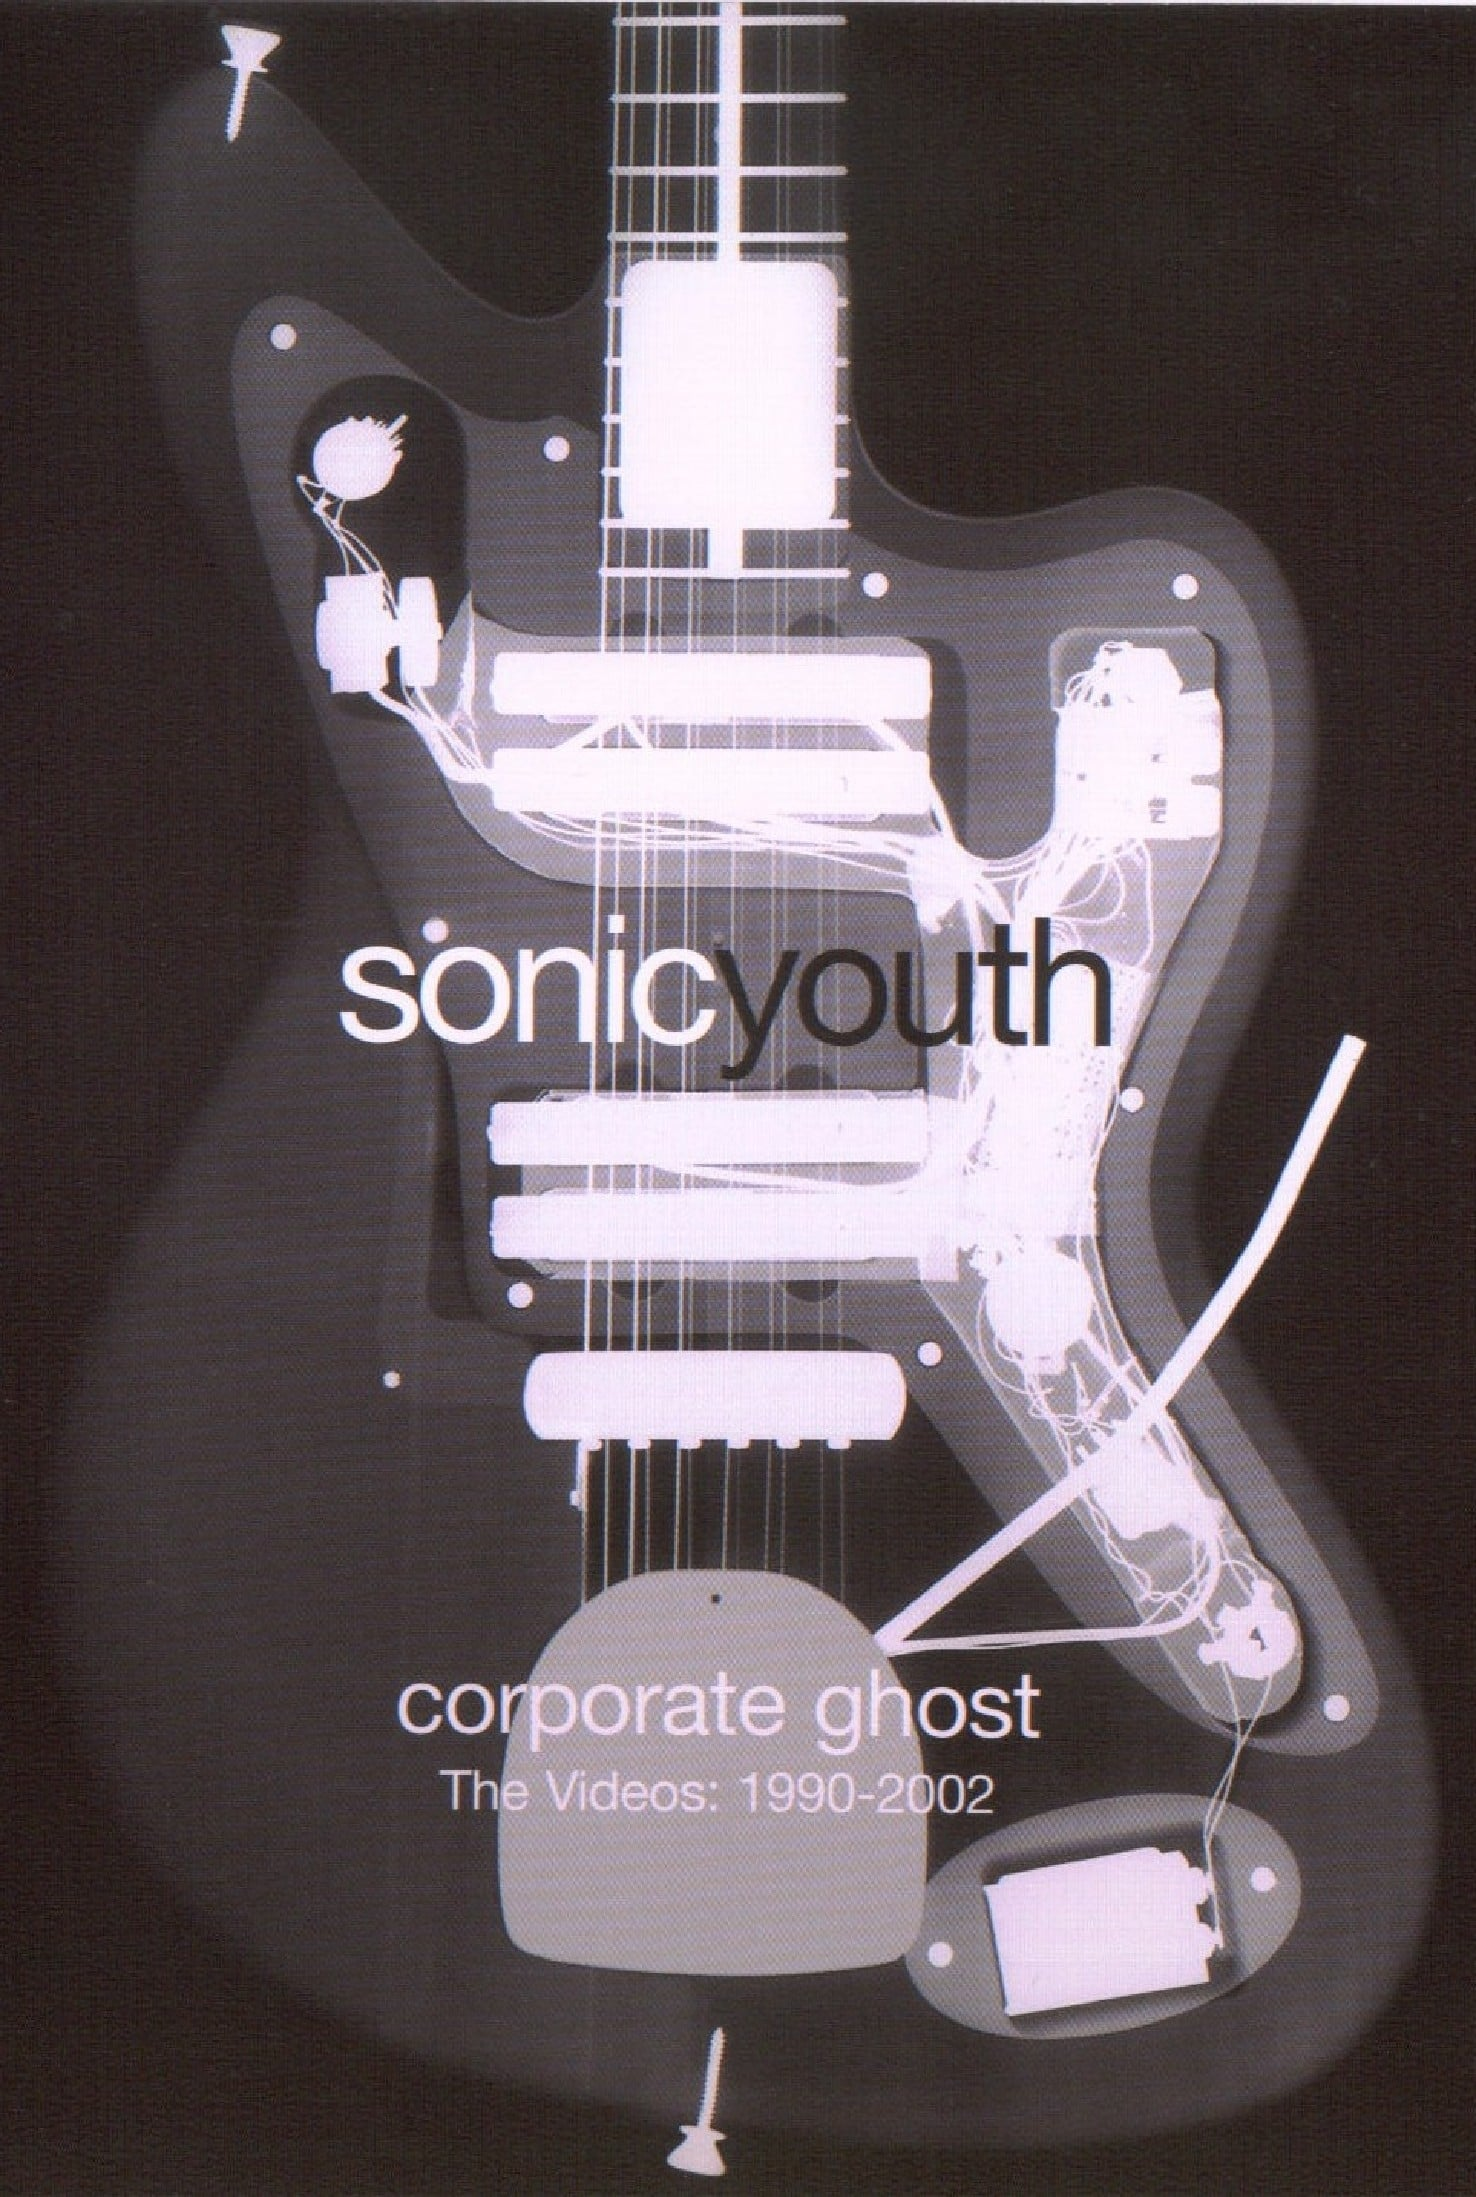 Sonic Youth: Corporate Ghost (2004)